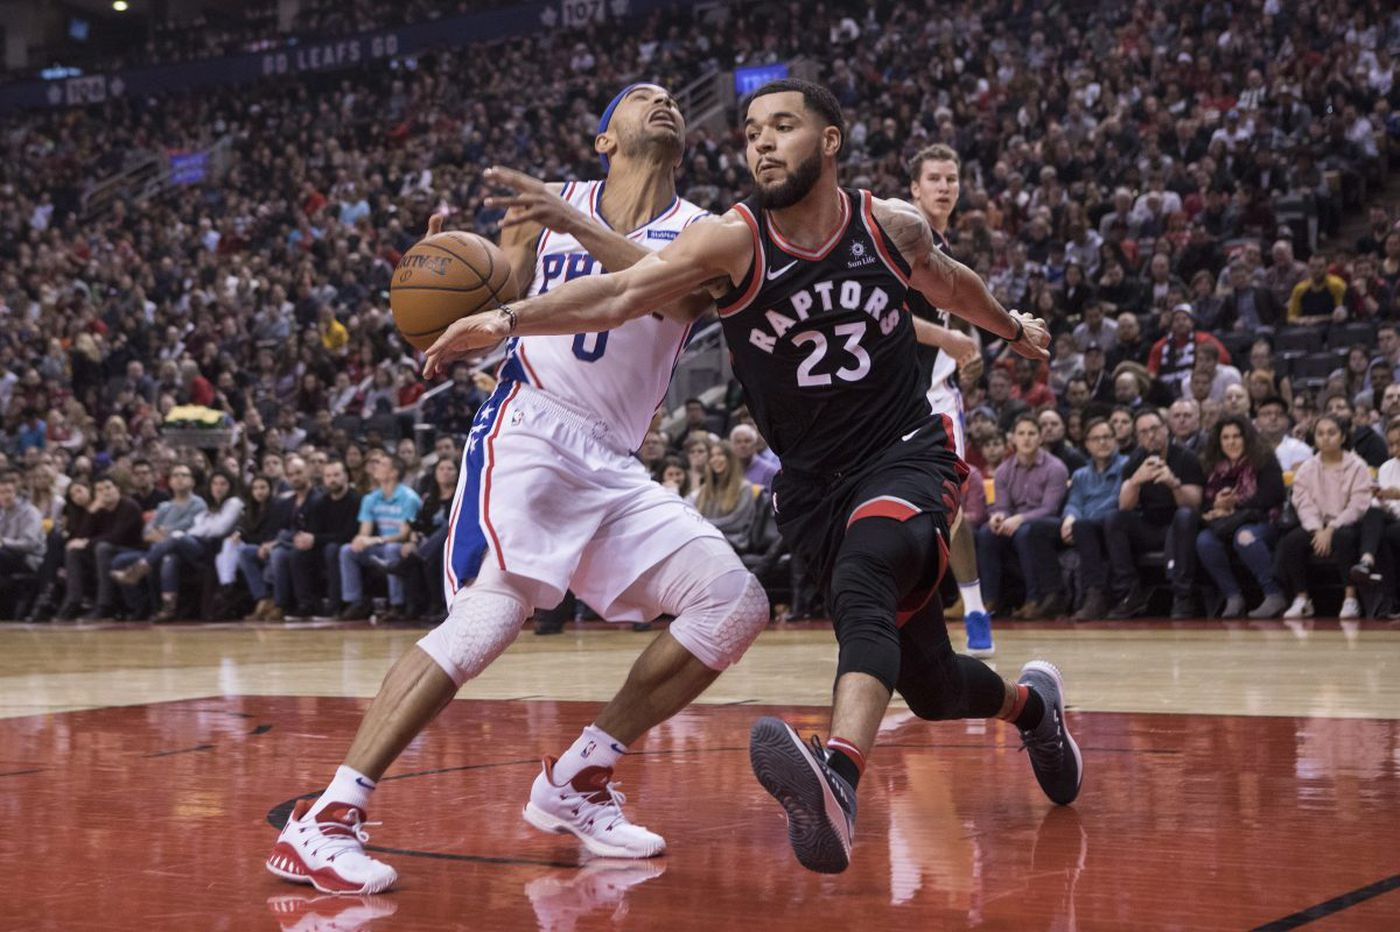 Raptors 102, Sixers 86: Joel Embiid's return spoiled in Toronto, and other quick thoughts from Philly's loss